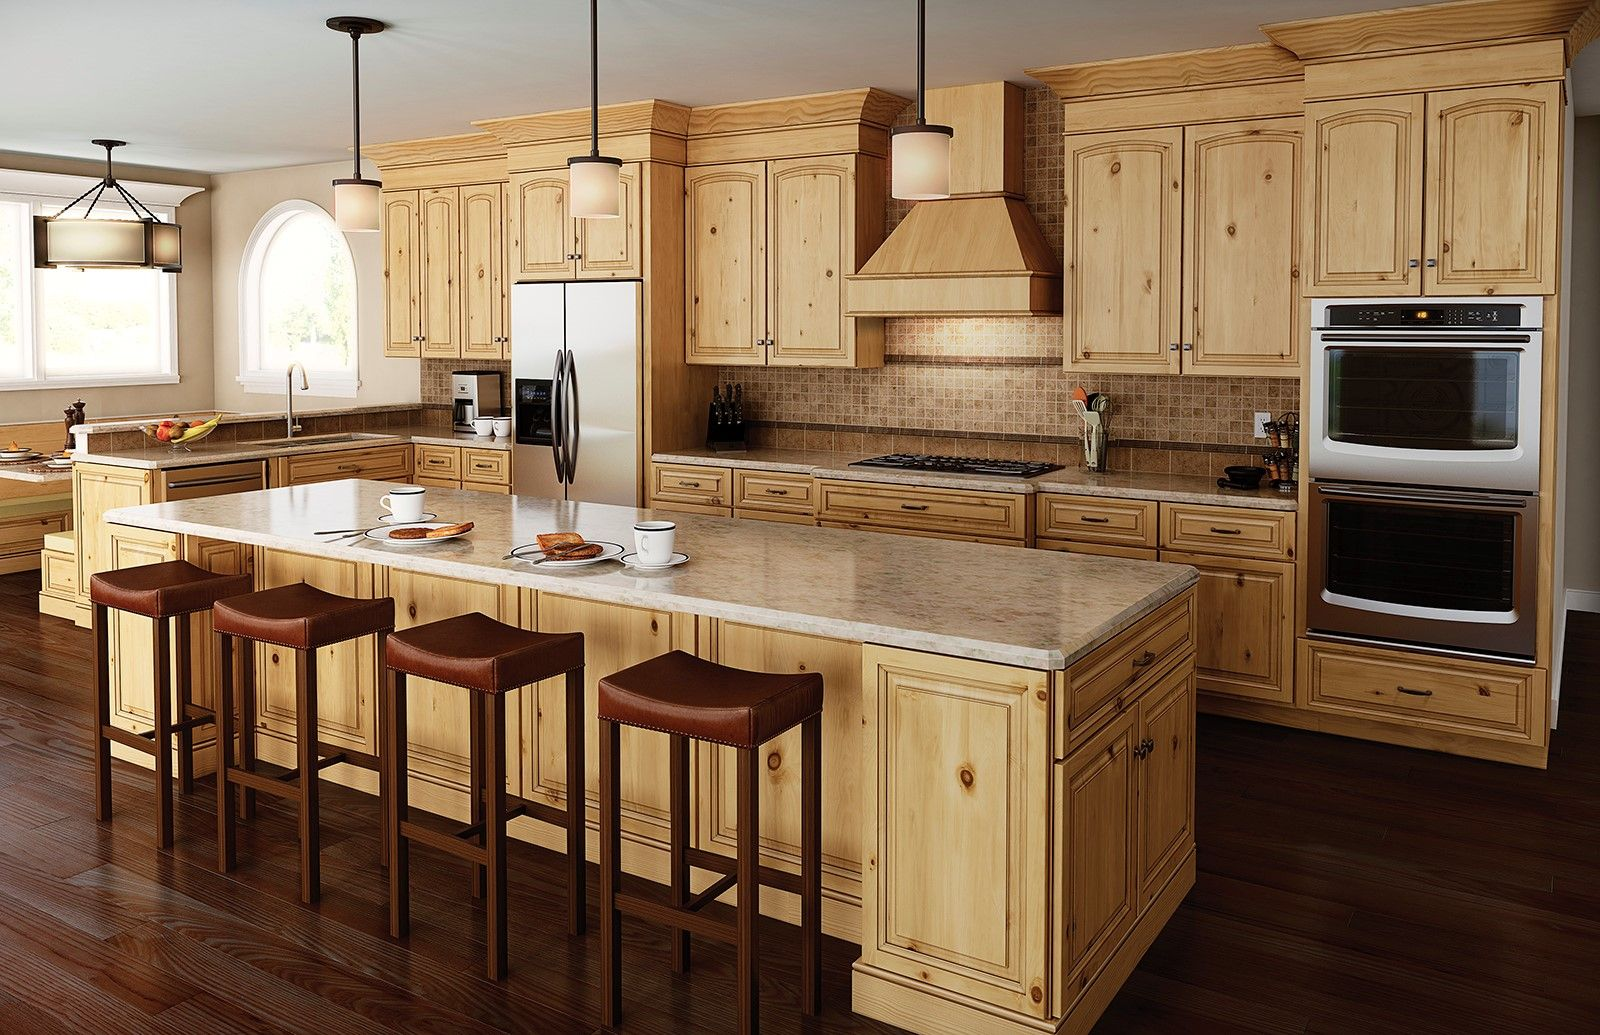 Images Of Kitchen Cabinets In Natural Rustic Birch